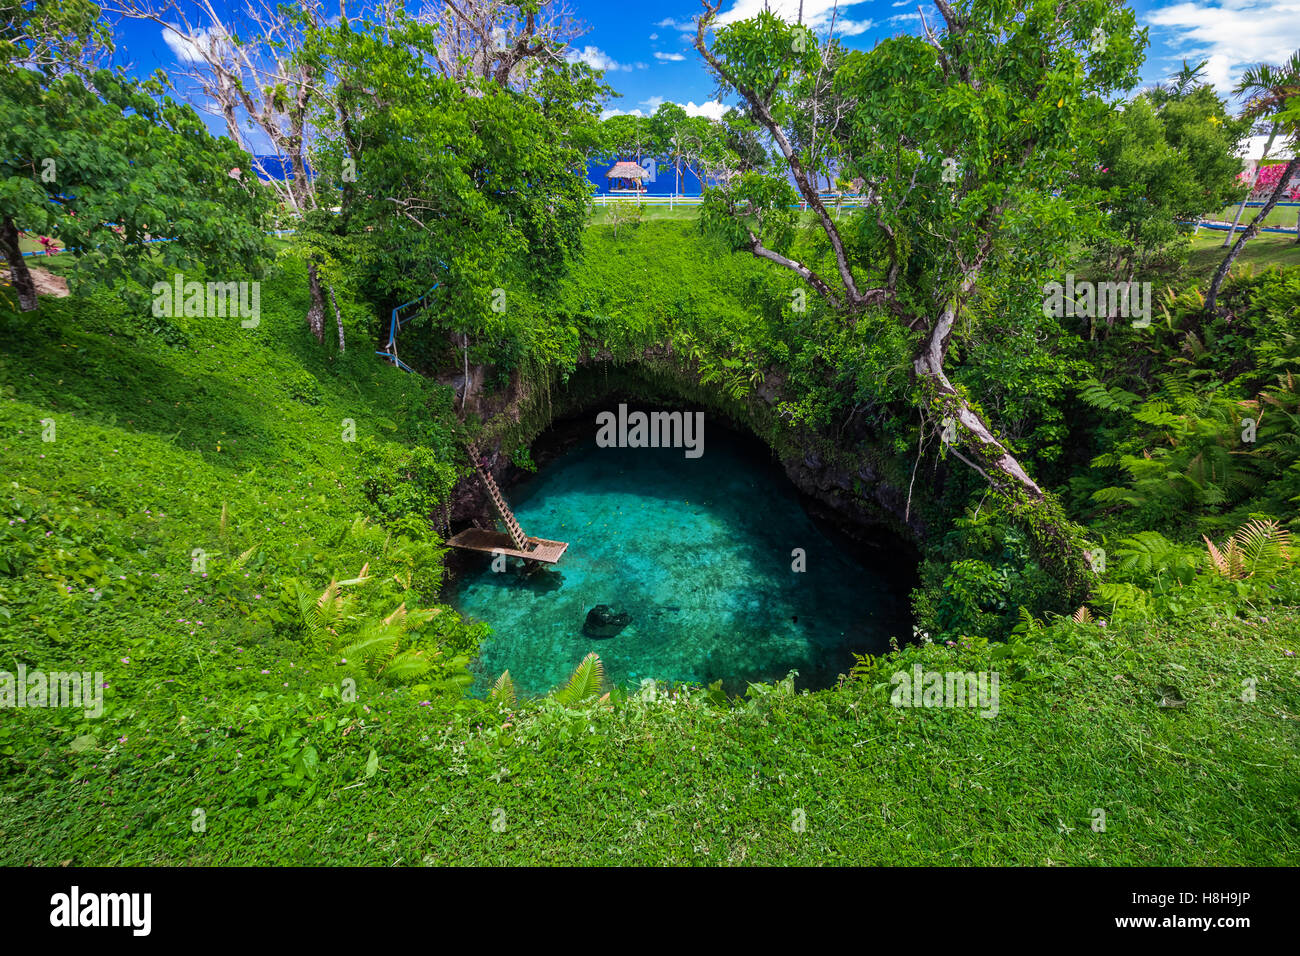 To Sua ocean trench - famous swimming hole, Upolu, Samoa, South Pacific - Stock Image